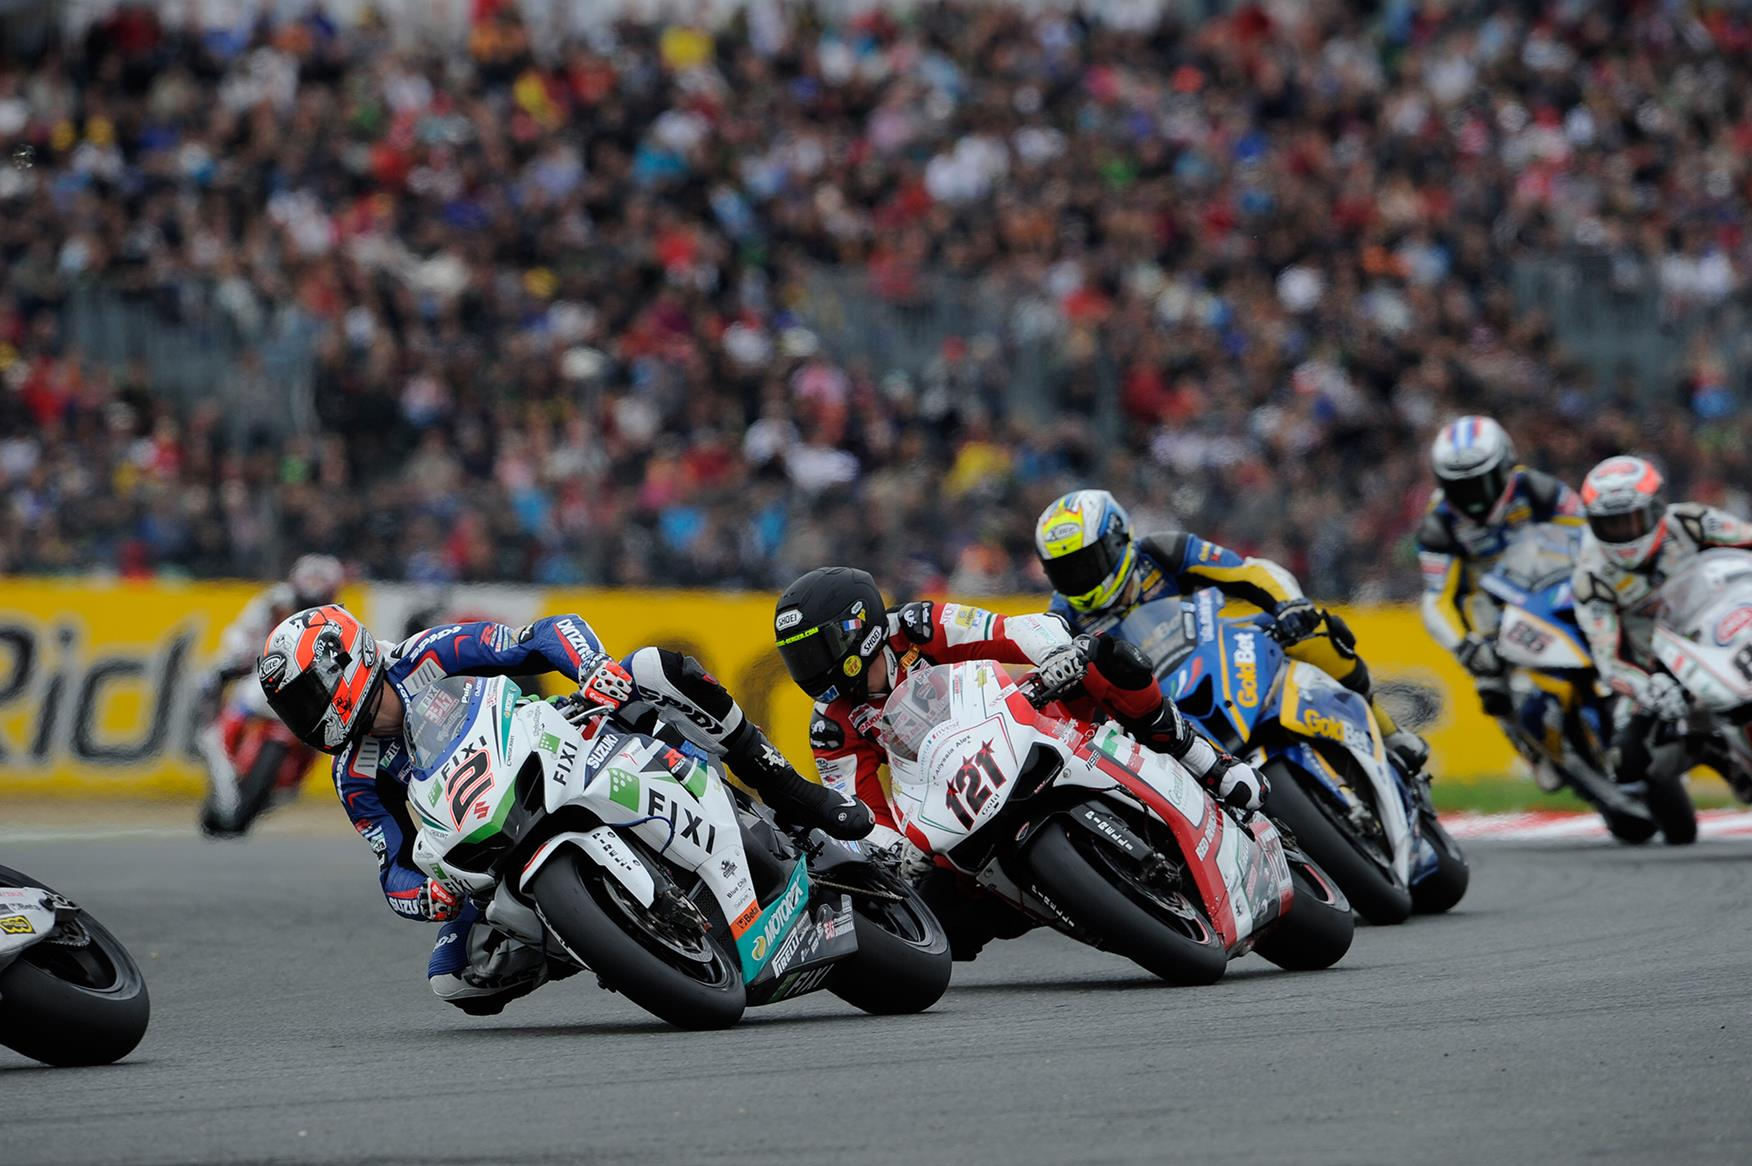 Leon Camier in action in World Superbikes